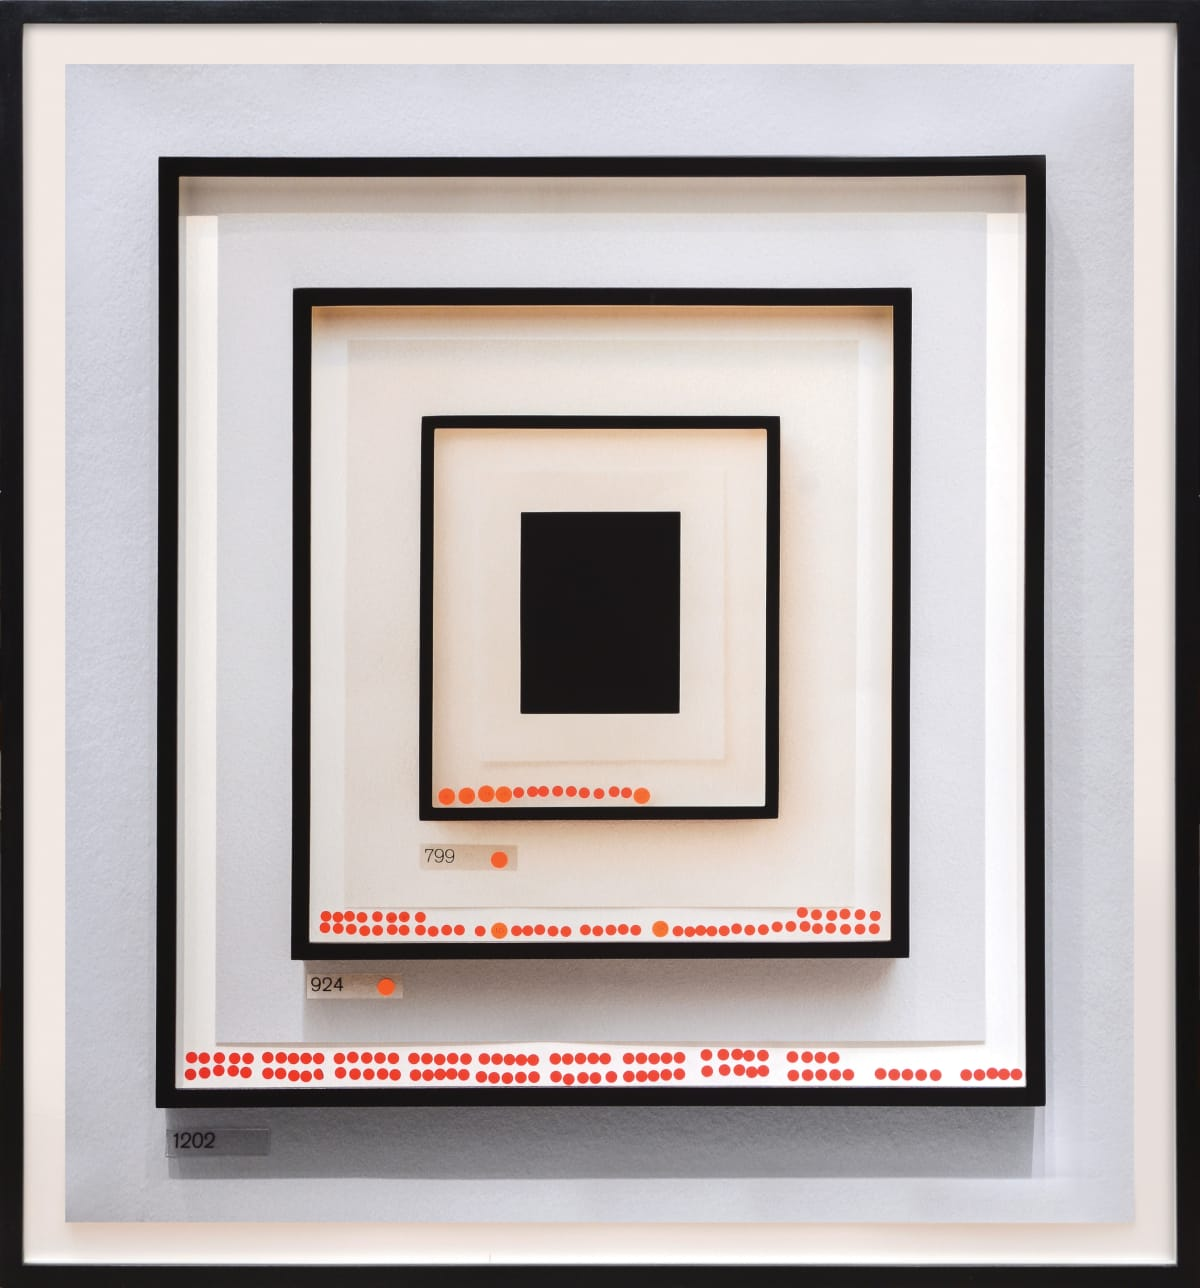 Cornelia Parker, Stolen Thunder (The Final), 2019 Digital print on 300 gsm Somerset Photo Satin paper 77 x 70 cm Edition of 100 Exhibited at the Royal Academy Summer Exhibition, London, 2019.